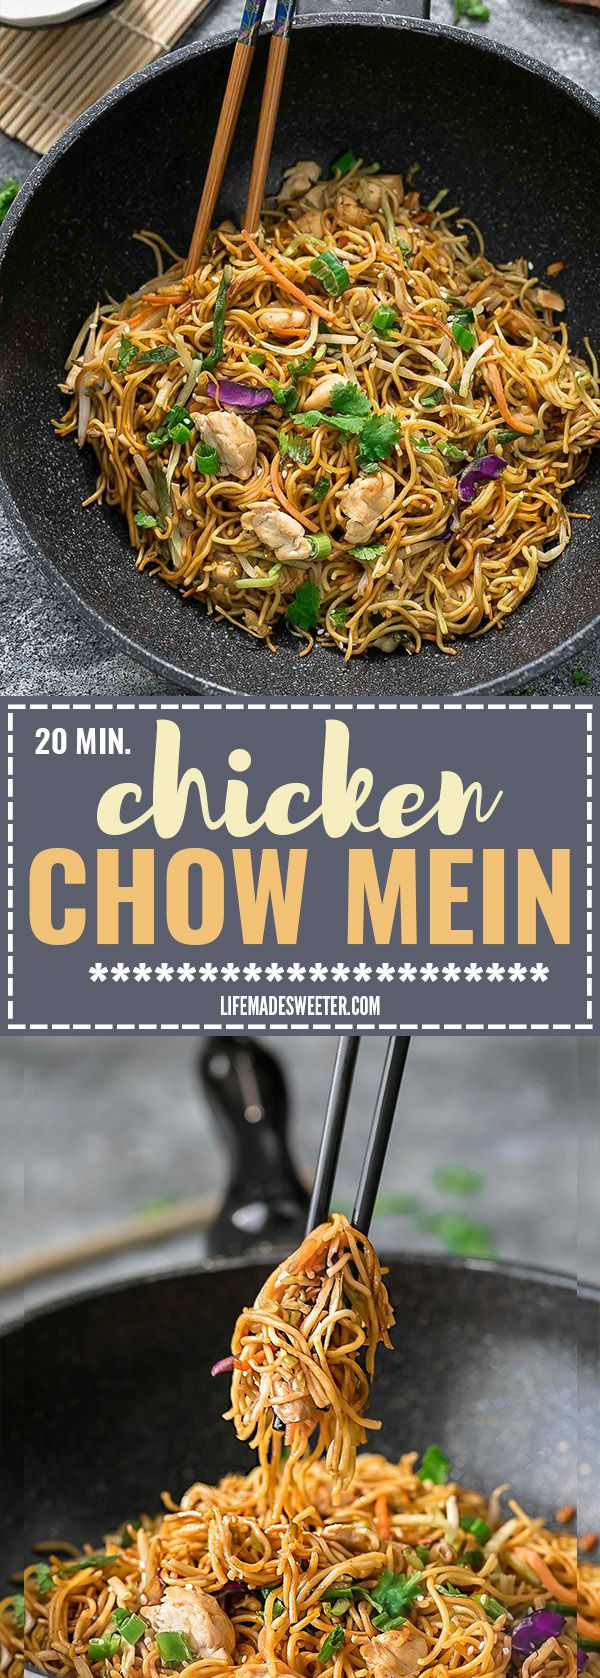 Chicken Chow Mein is the perfect easy weeknight meal! Best of all, it comes together in under 20 minutes in just one pot! Forget calling restaurant takeout, this recipe is so much better with authentic flavors. Seriously the best!!